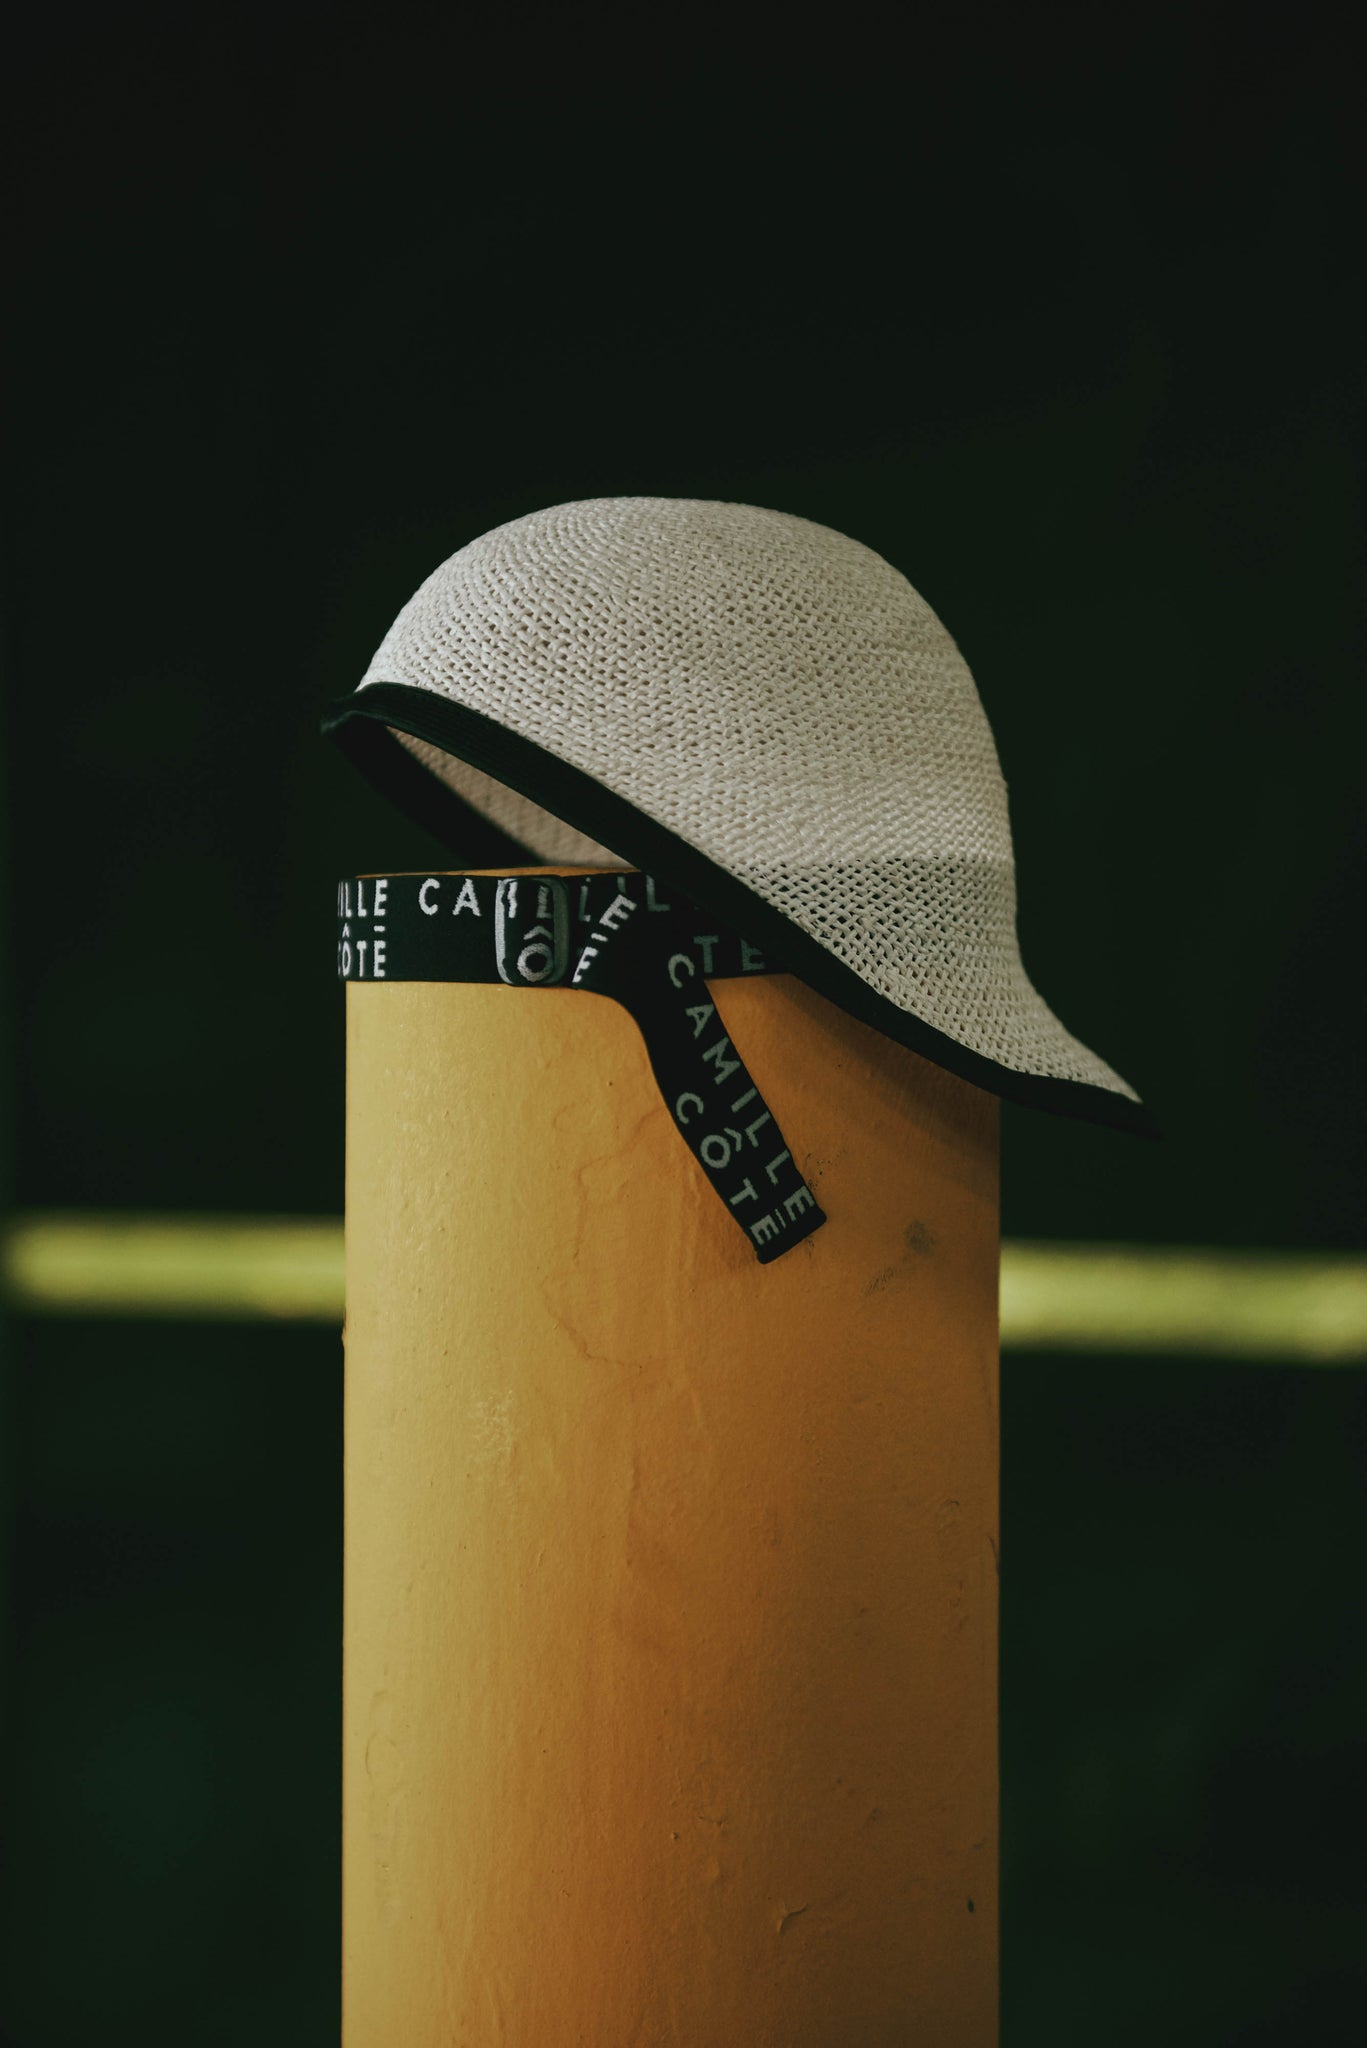 In the street there is the Claire white straw riding cap with Camille Côté logo on it.